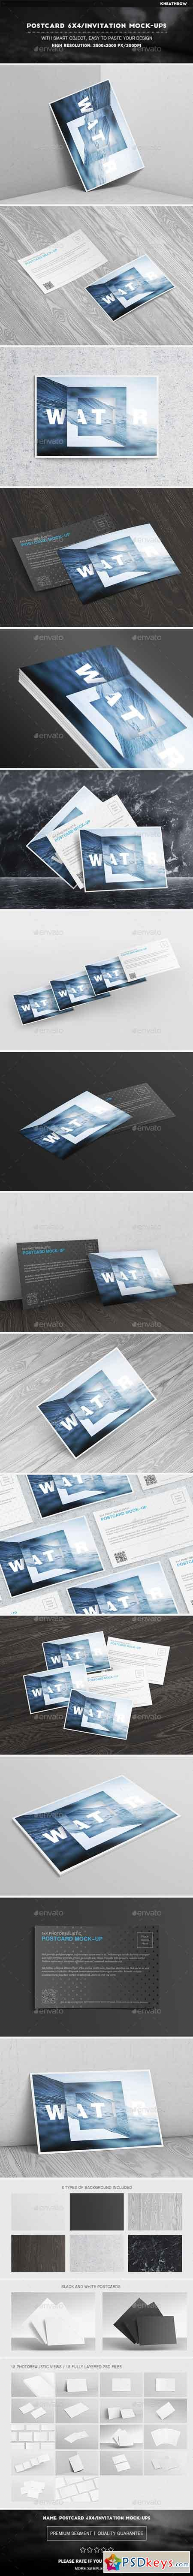 Photorealistic 6x4 Postcard & Invitation Mock-Ups 15597544